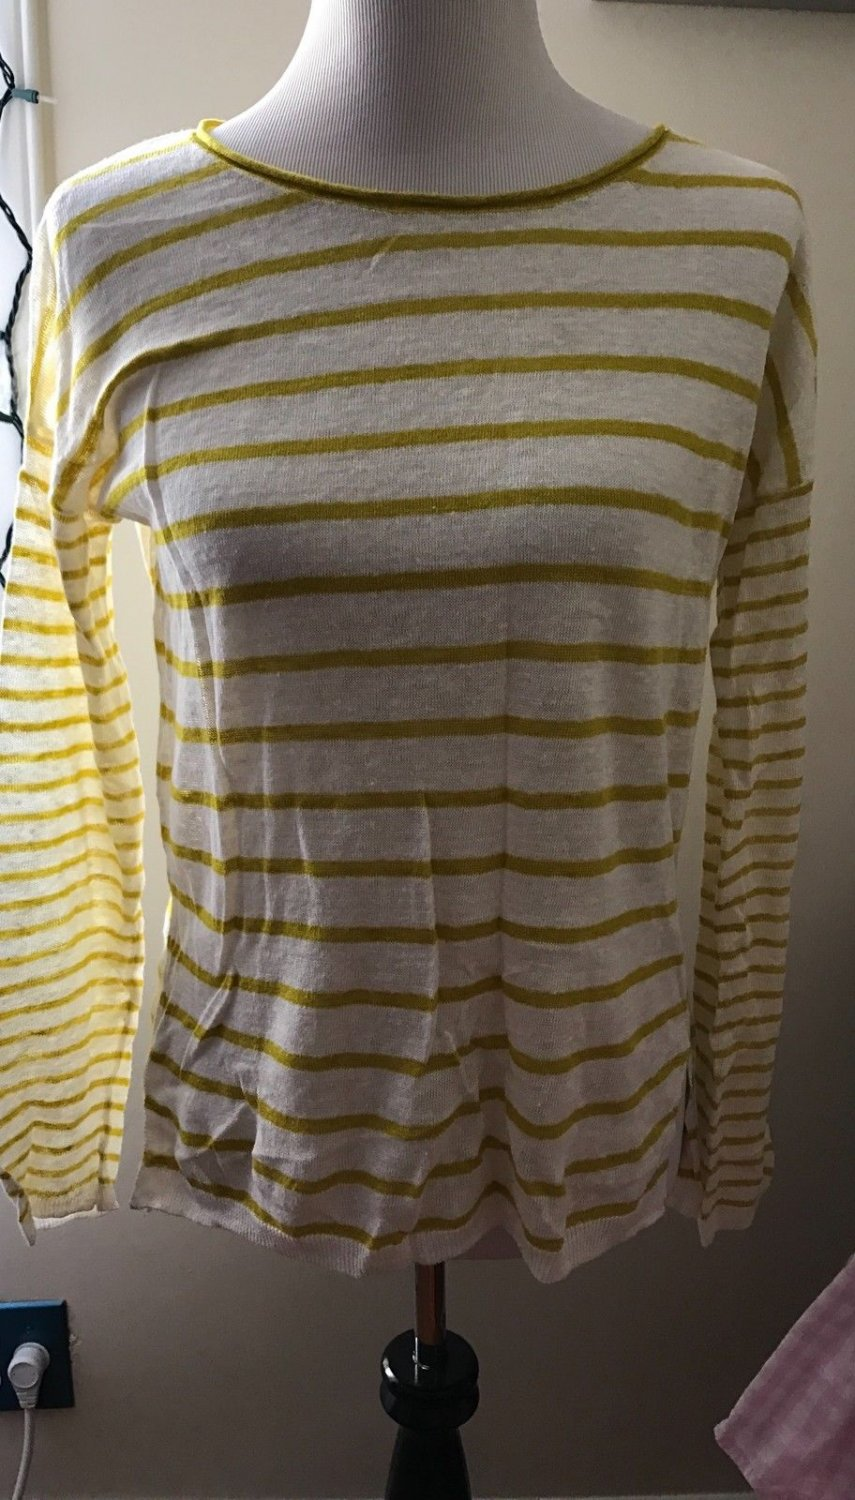 Vince White 100% Linen Yellow Striped Long Sleeved Sweater SZ S